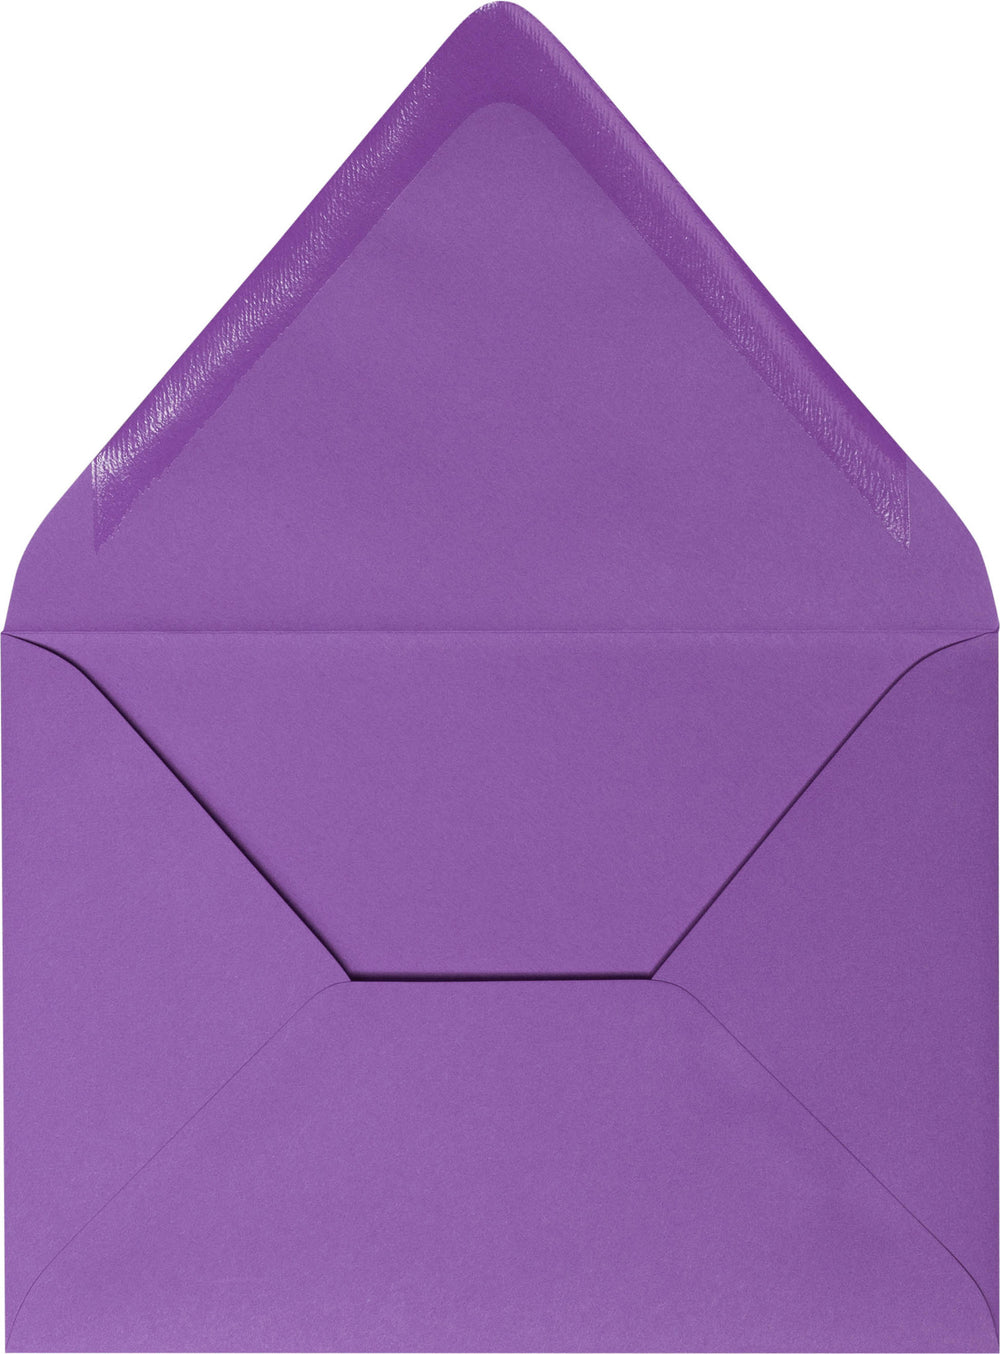 "A-7 Purple Grape Solid Euro Flap Envelopes (5 1/4"" x 7 1/4"")"